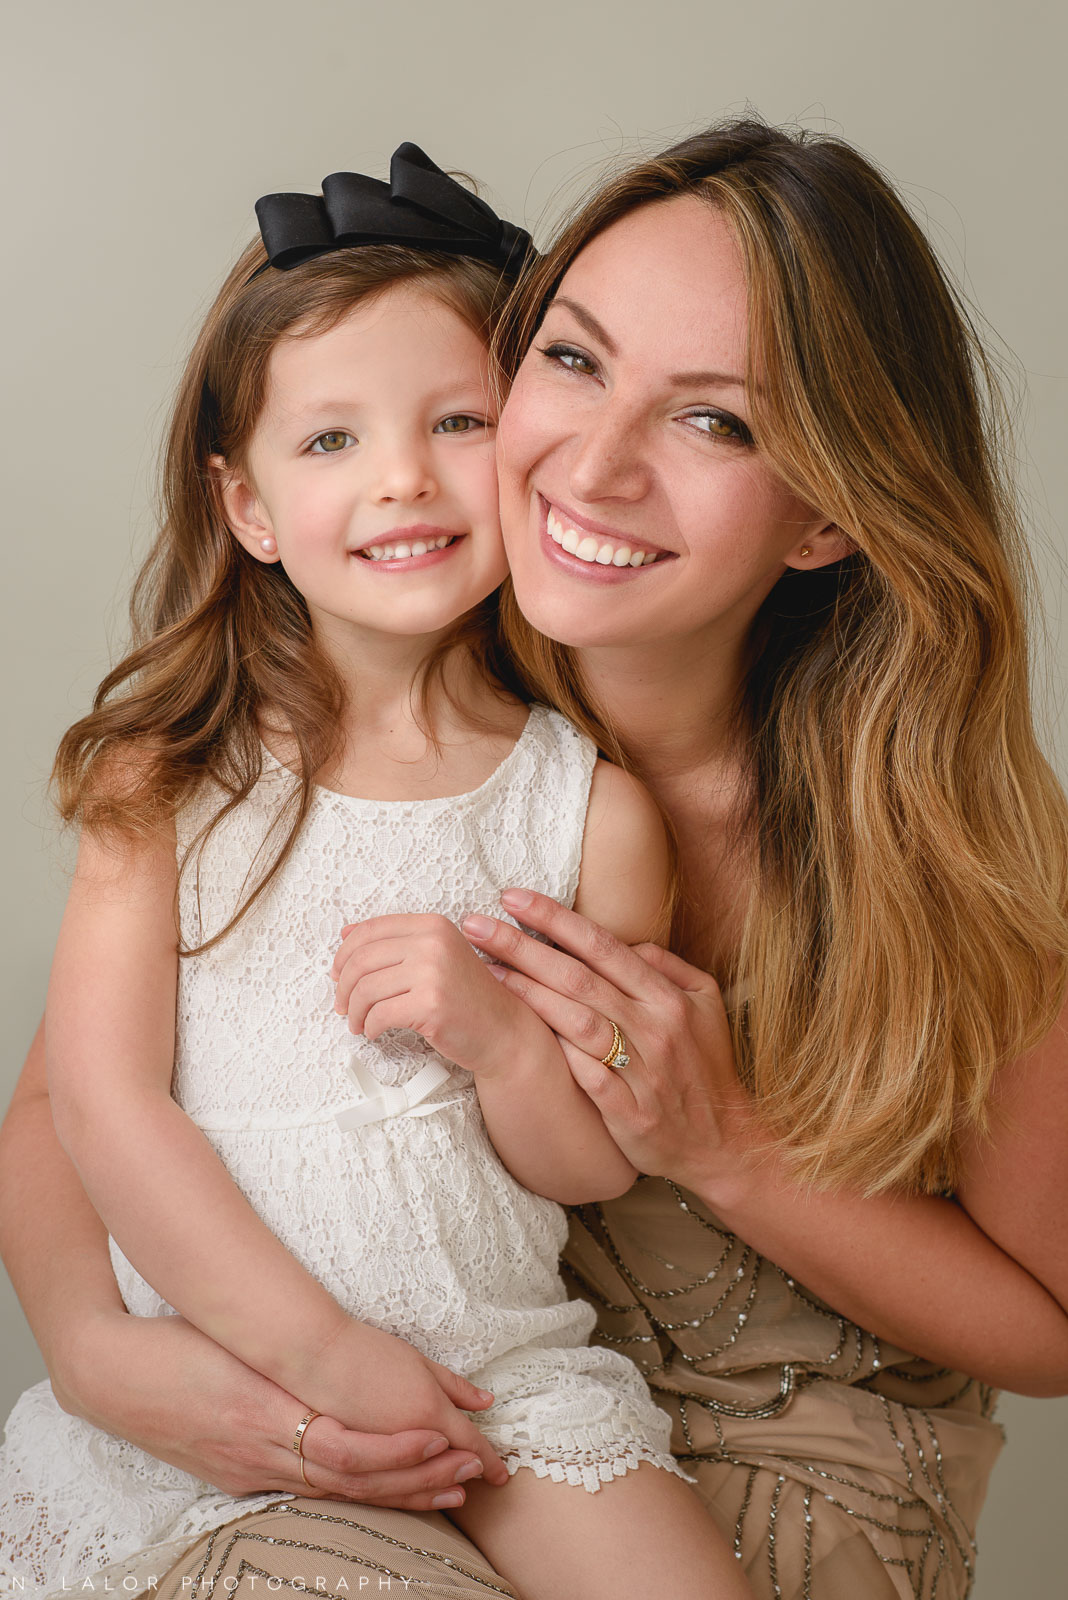 Beautiful mom with her daughter. A Mother and Daughter photoshoot with N. Lalor Photography in Greenwich, Connecticut.